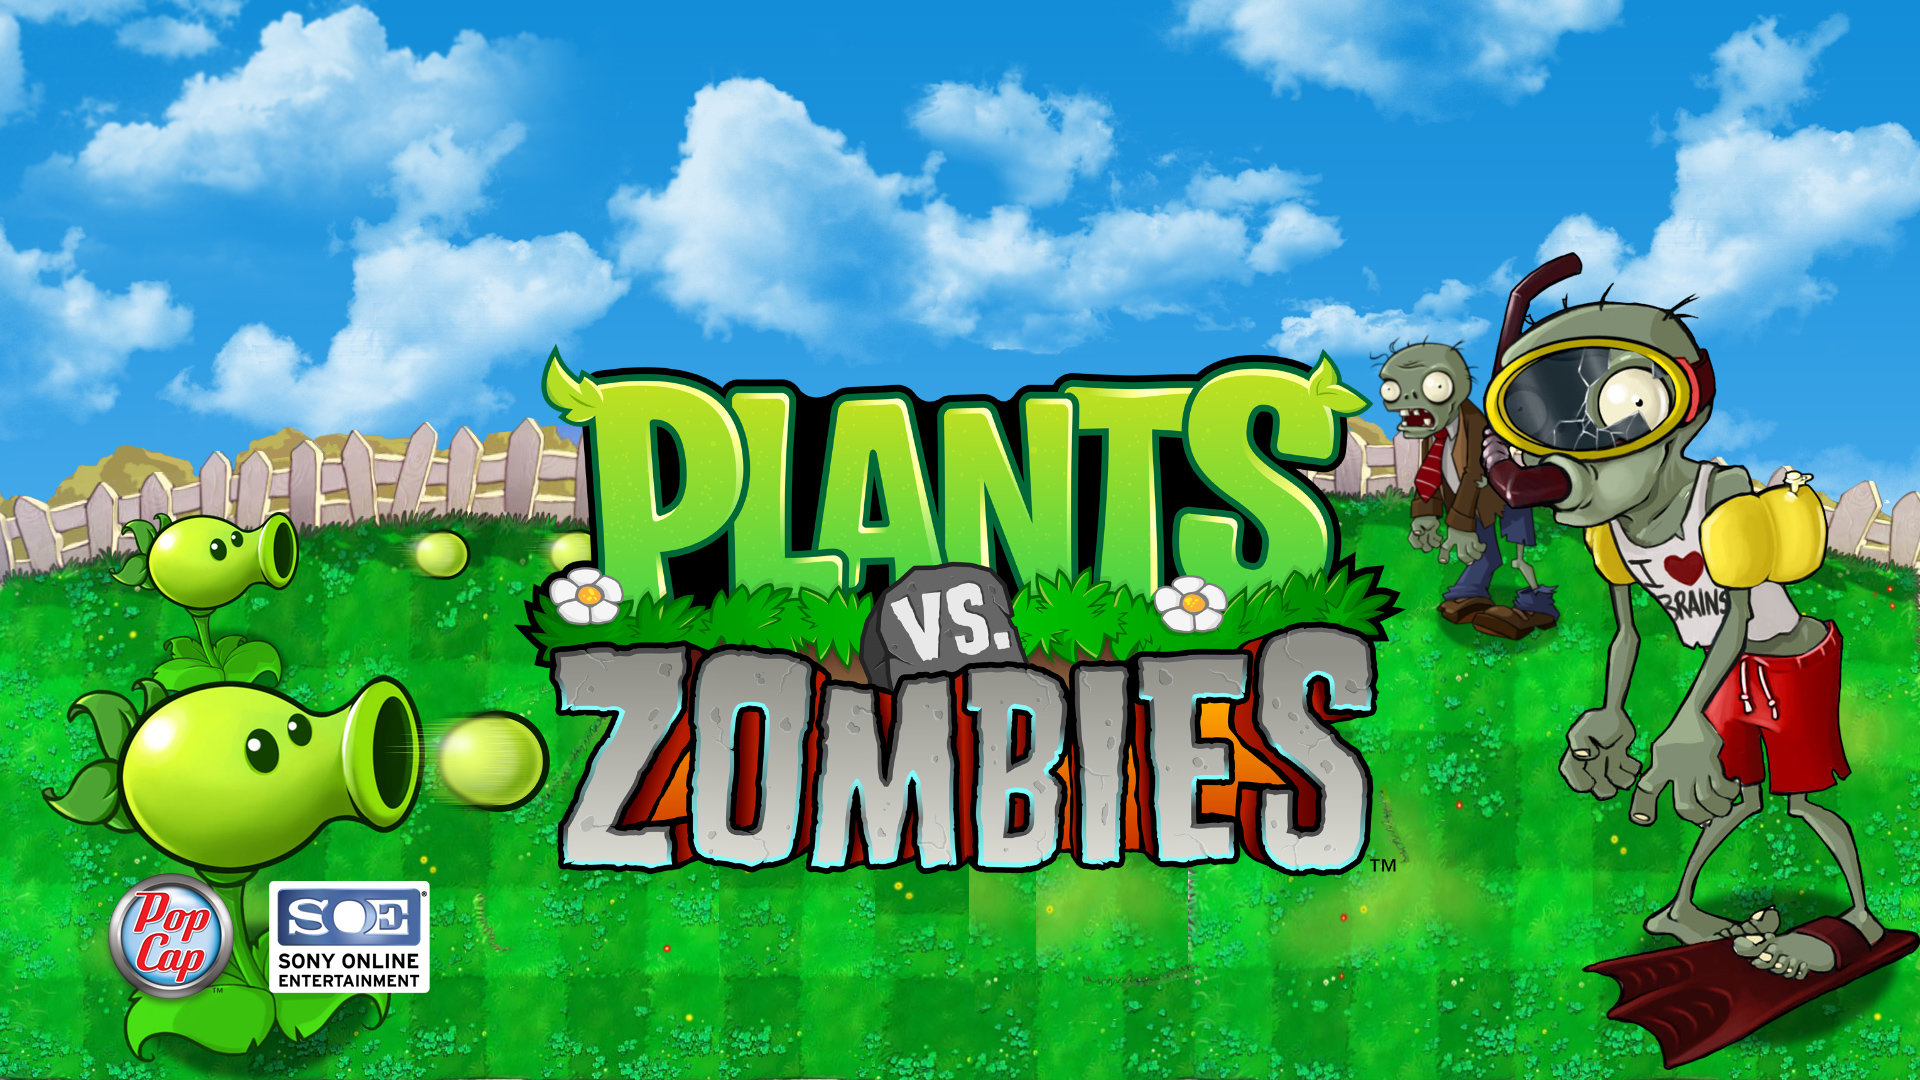 Free Plants Vs Zombies (PVZ) high quality wallpaper ID:131558 for full hd computer